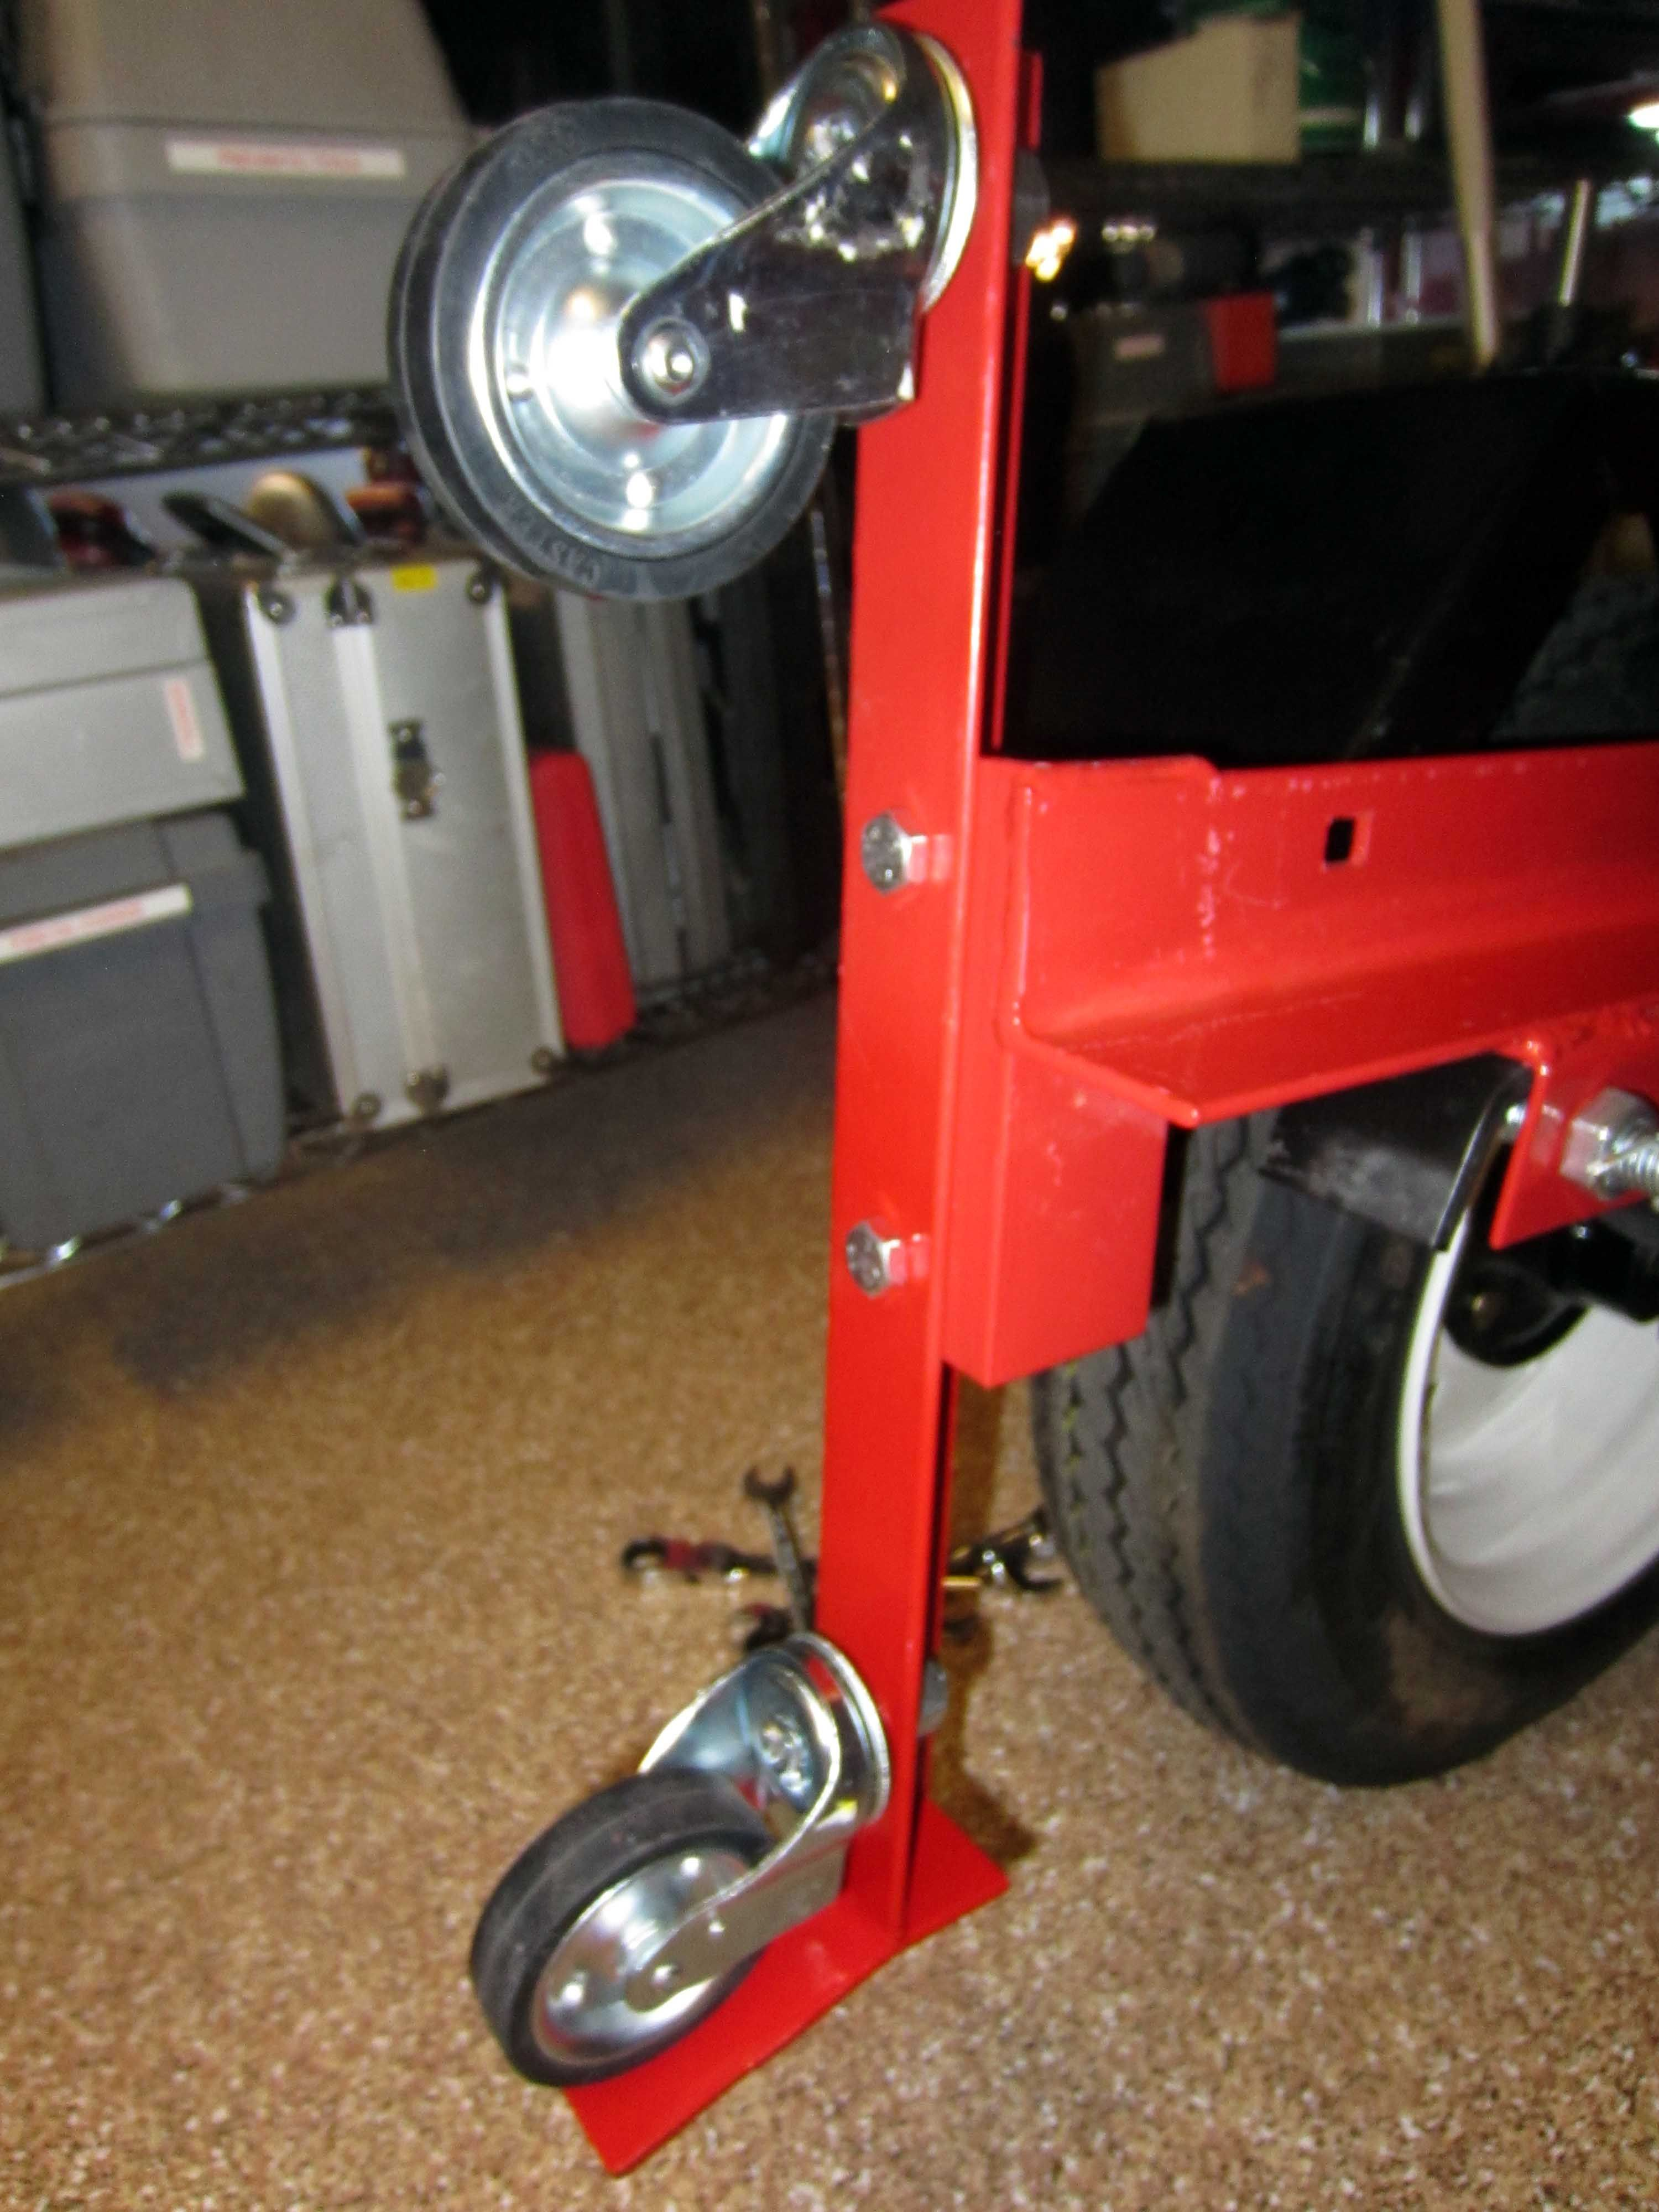 Harbor Freight 4 39 X 8 39 Folding Trailer Mods Finally Done The Garage Journal Boar Harbor Freight Folding Trailer Foldable Trailer Utility Trailer